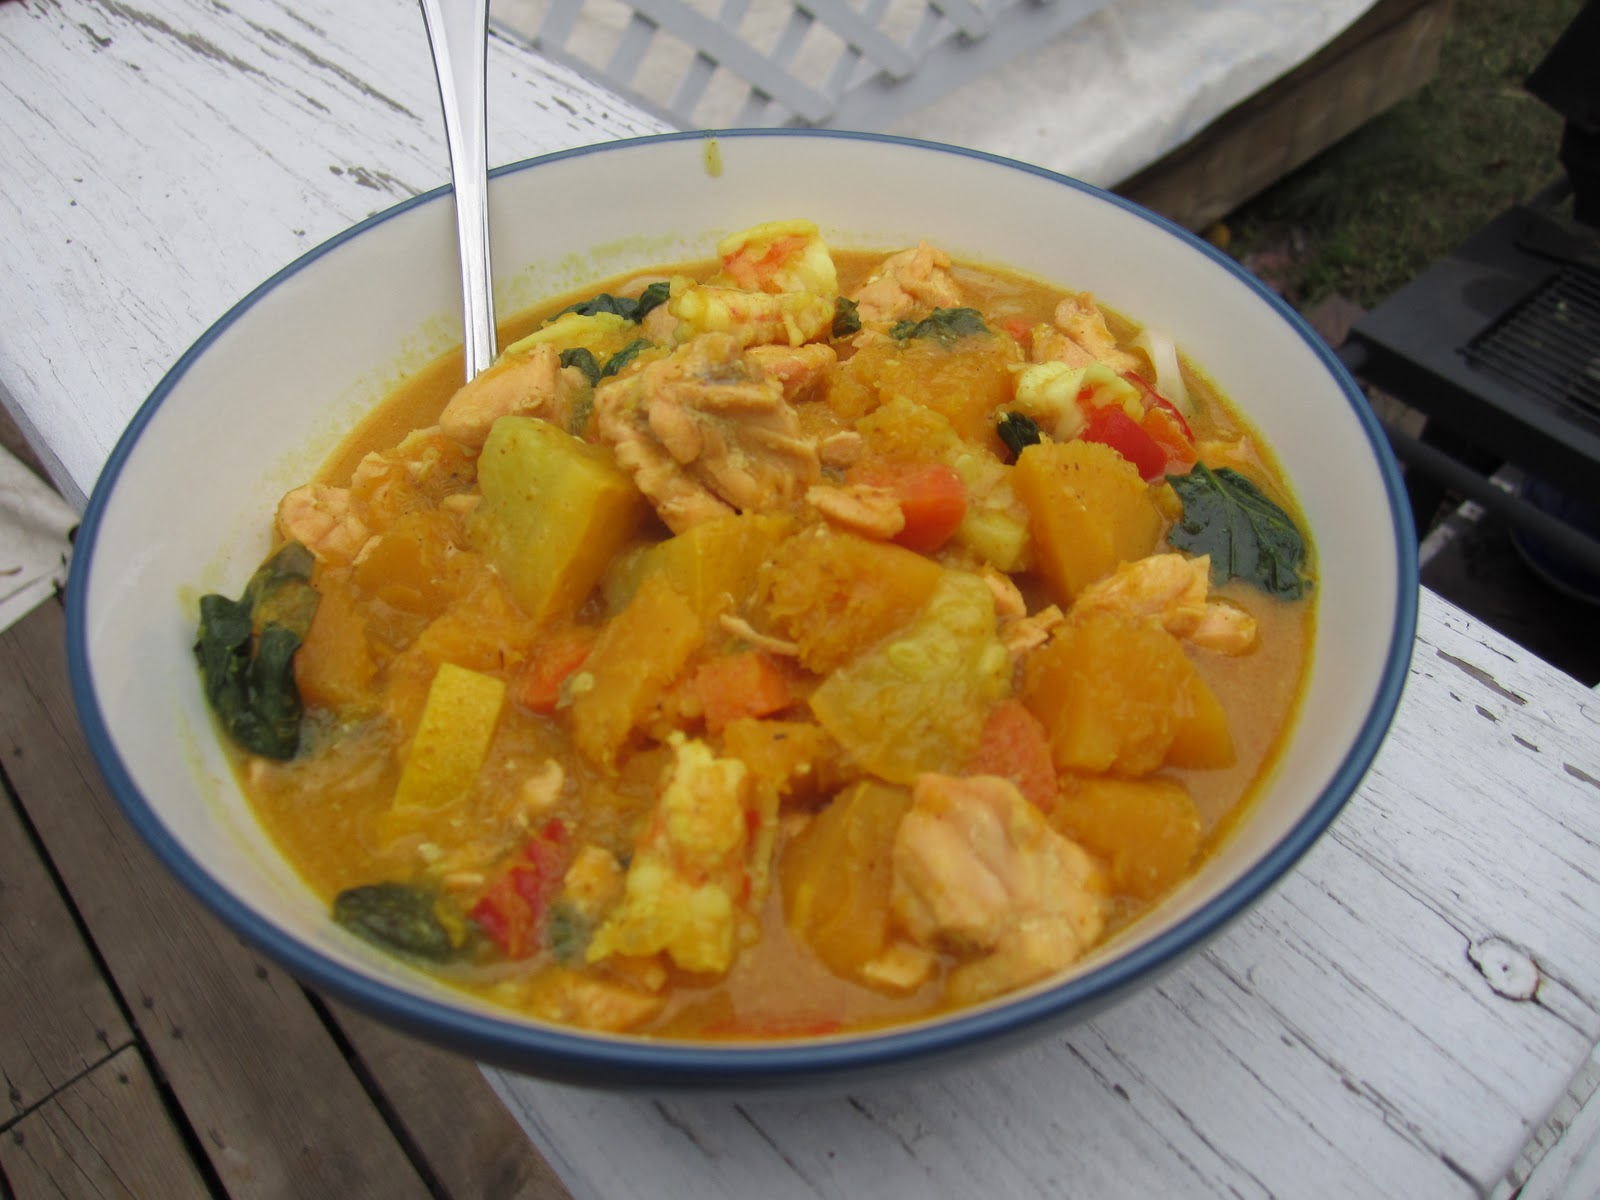 based on Nigella Lawson's Thai yellow pumpkin and seafood curry